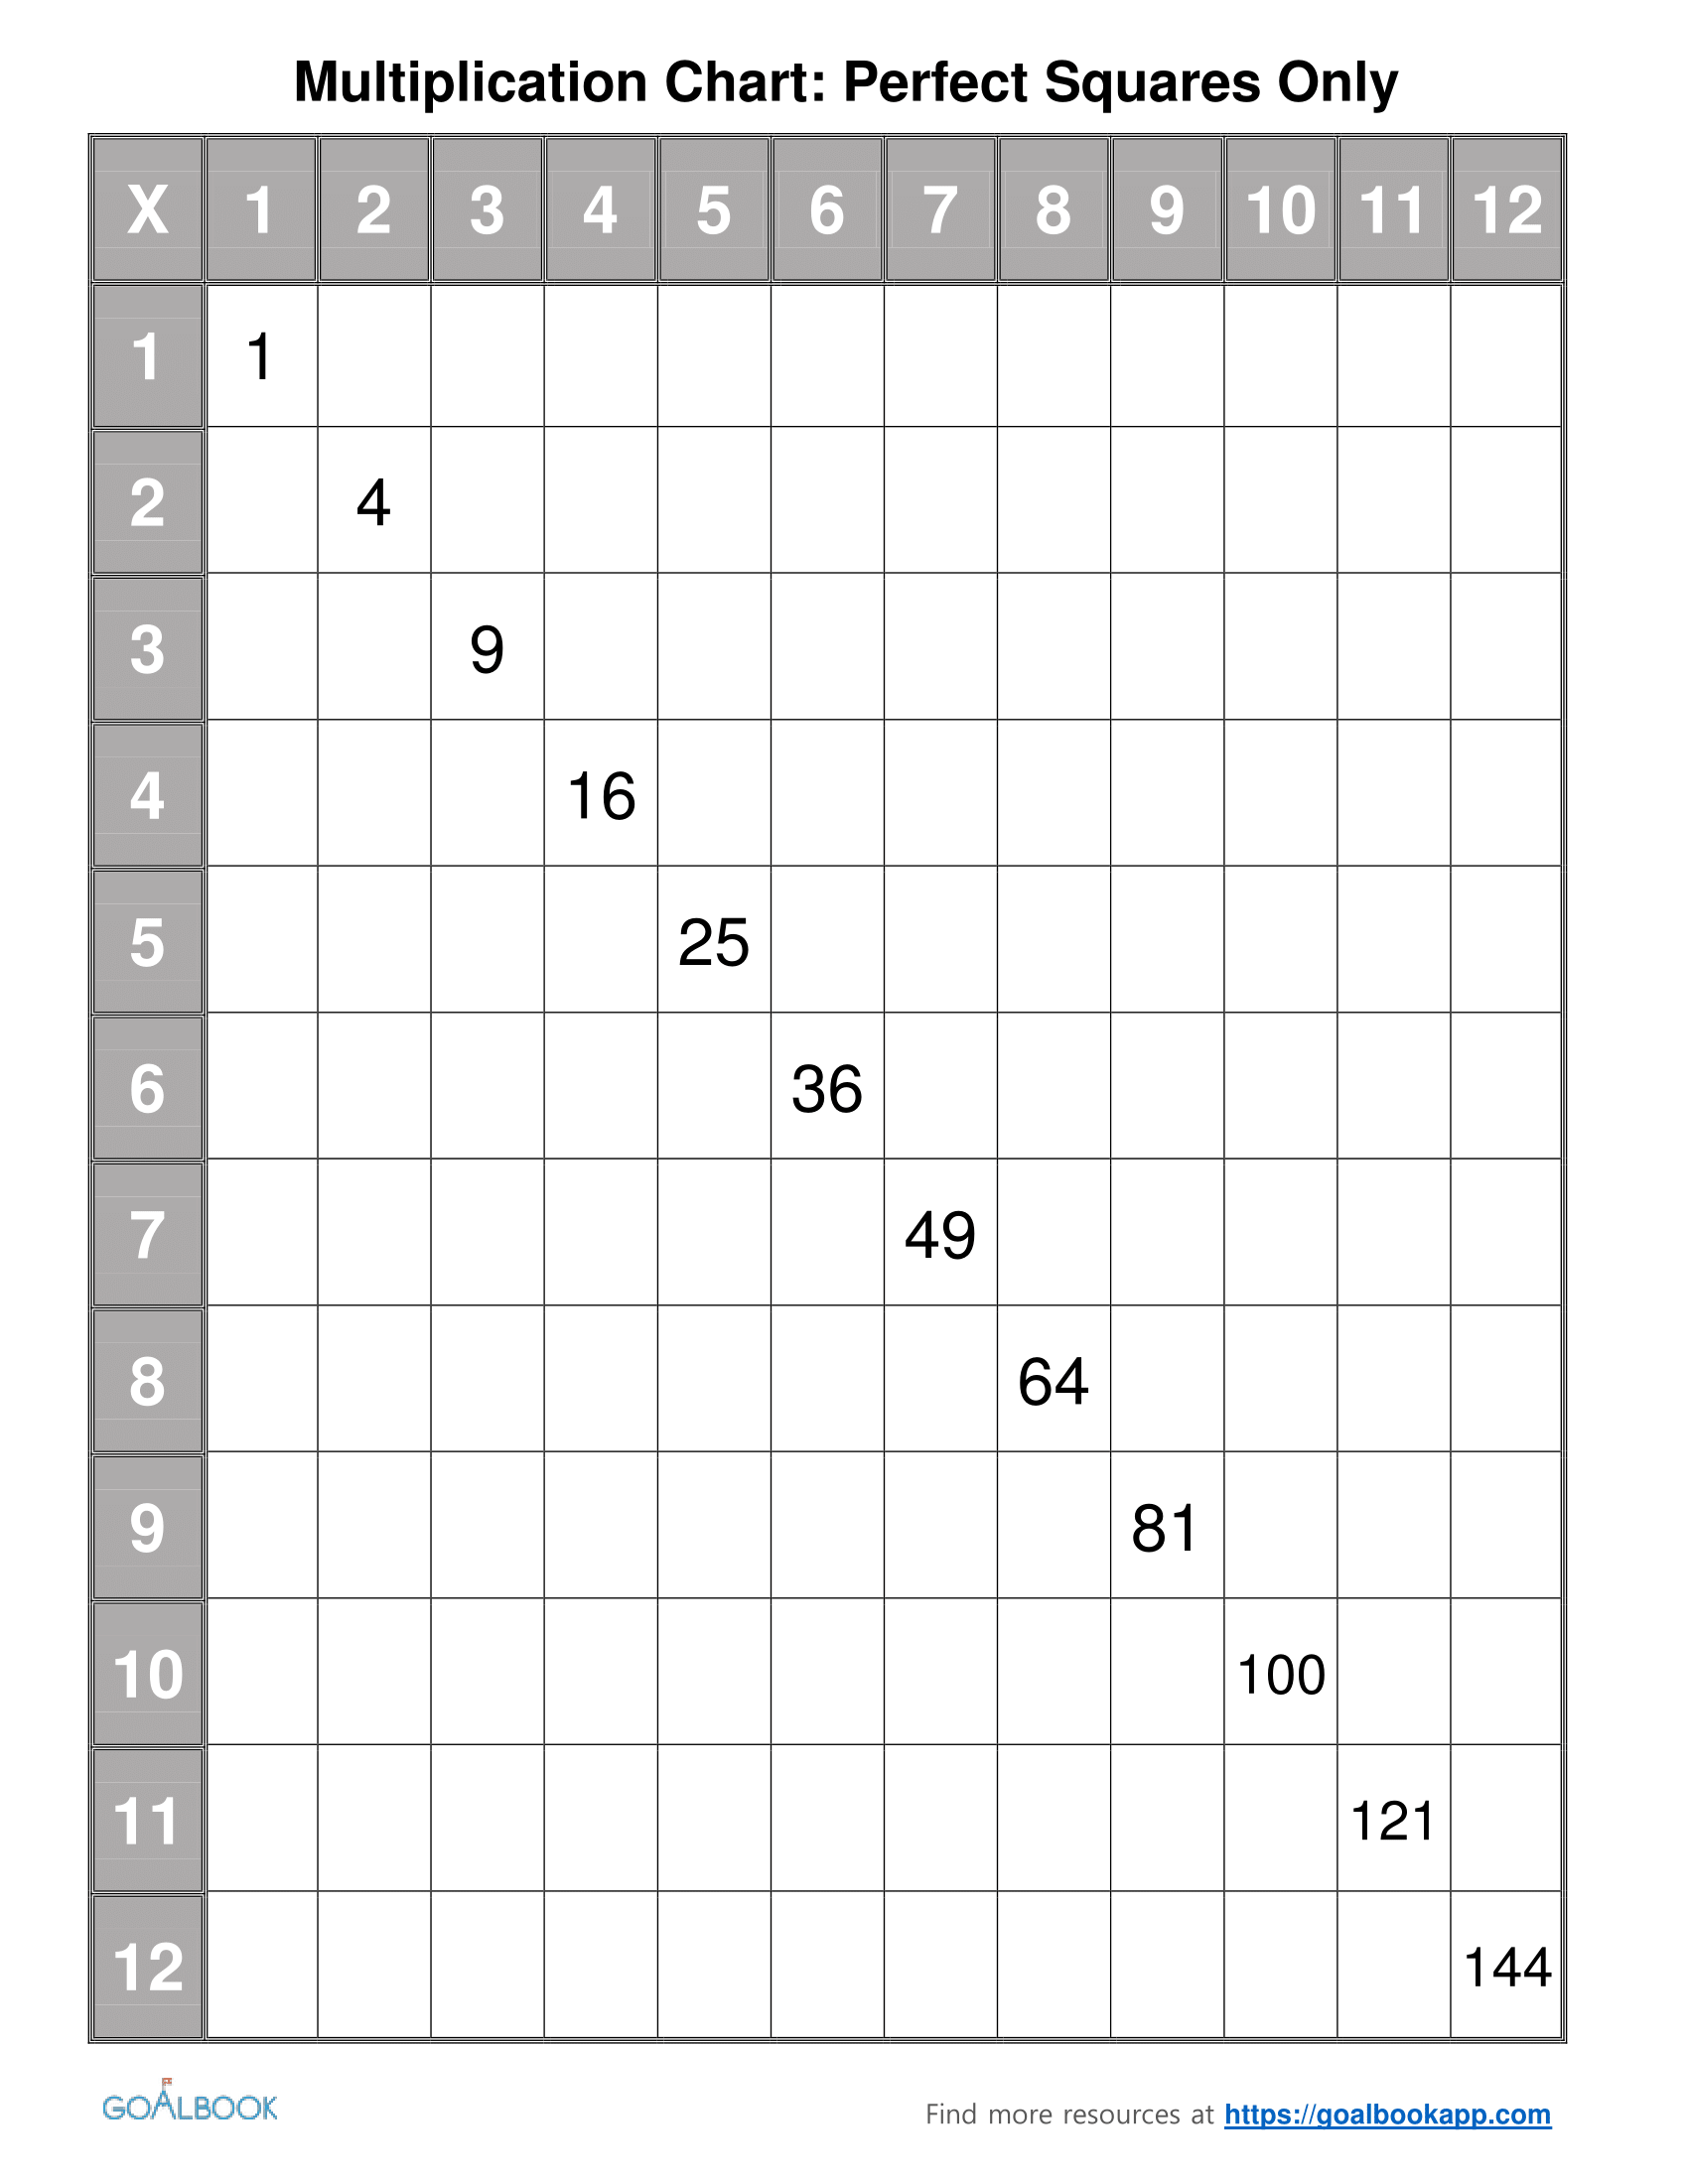 Perfect squares multiplication charts goalbook pathways perfect squares multiplication charts nvjuhfo Choice Image